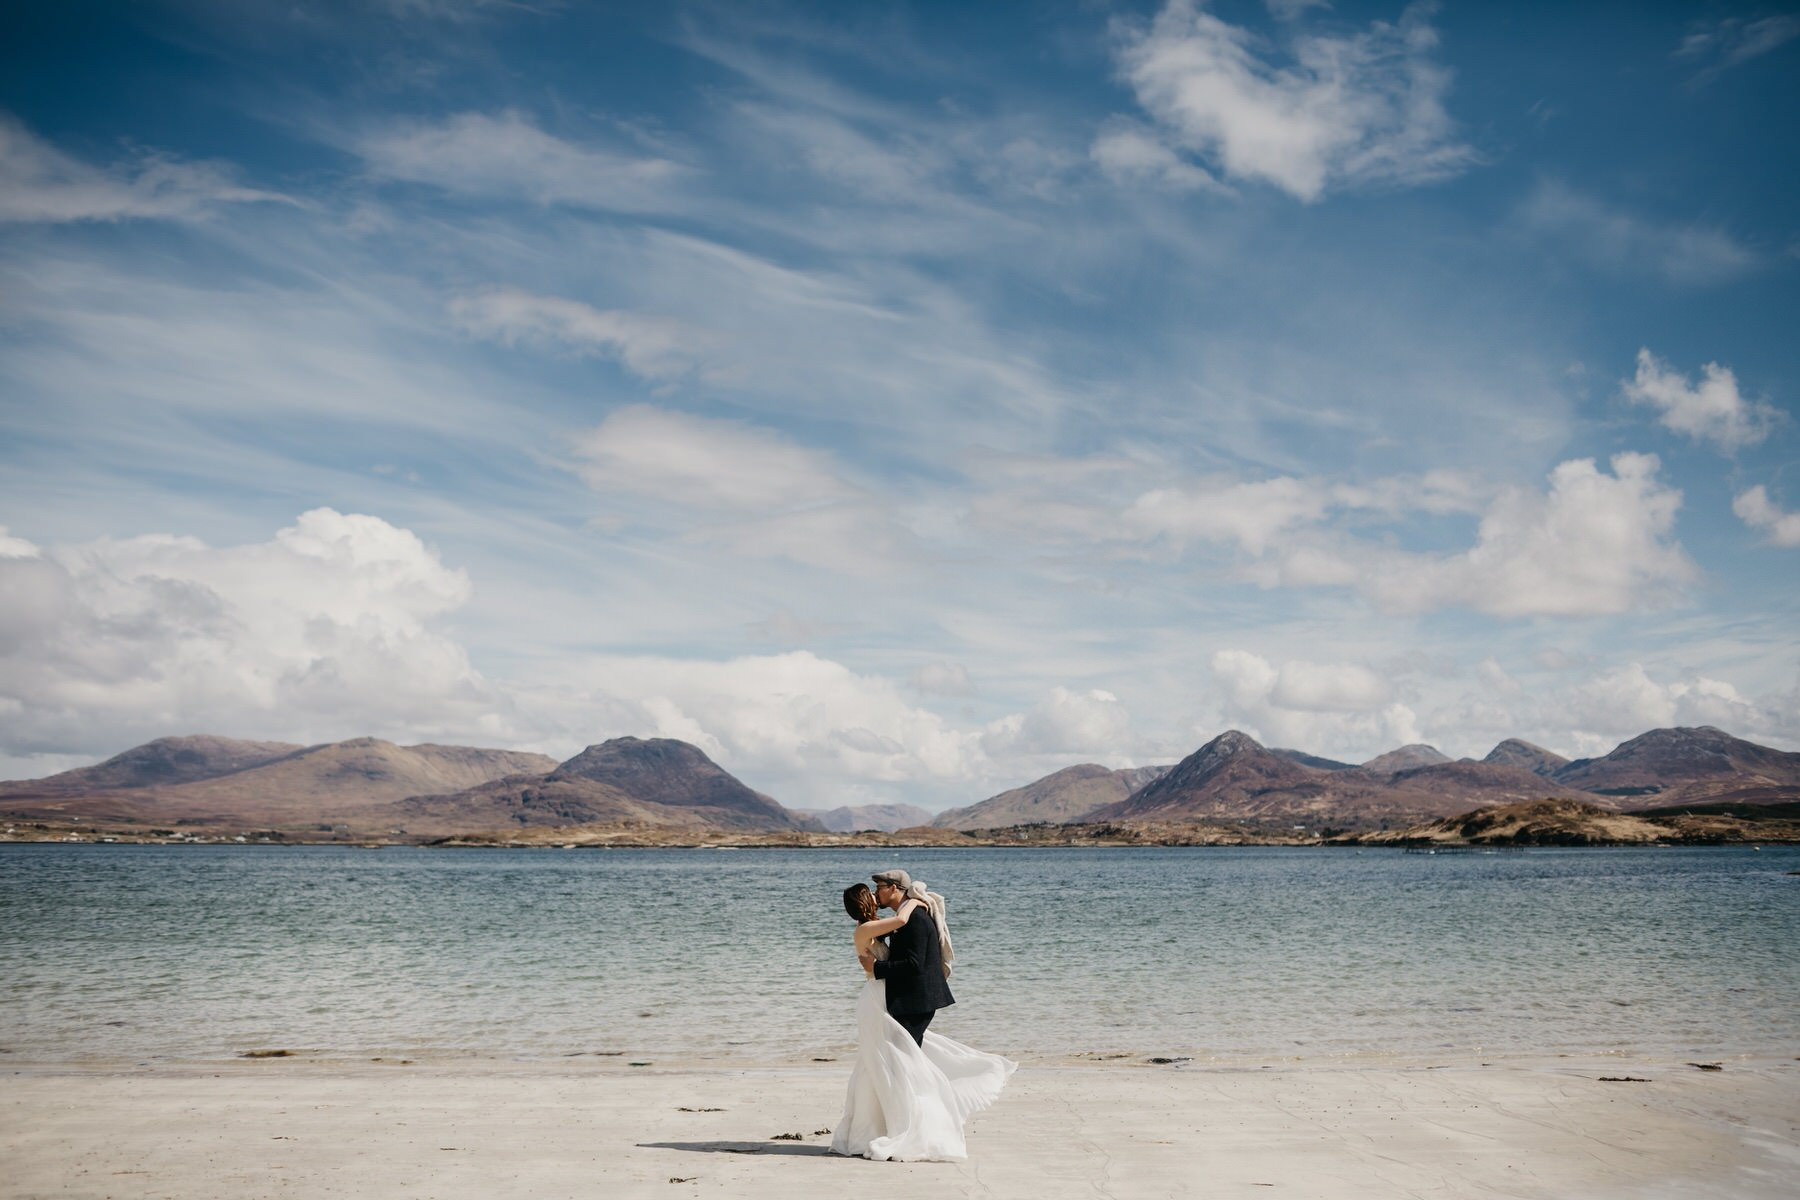 A bride and groom kissing on the beach